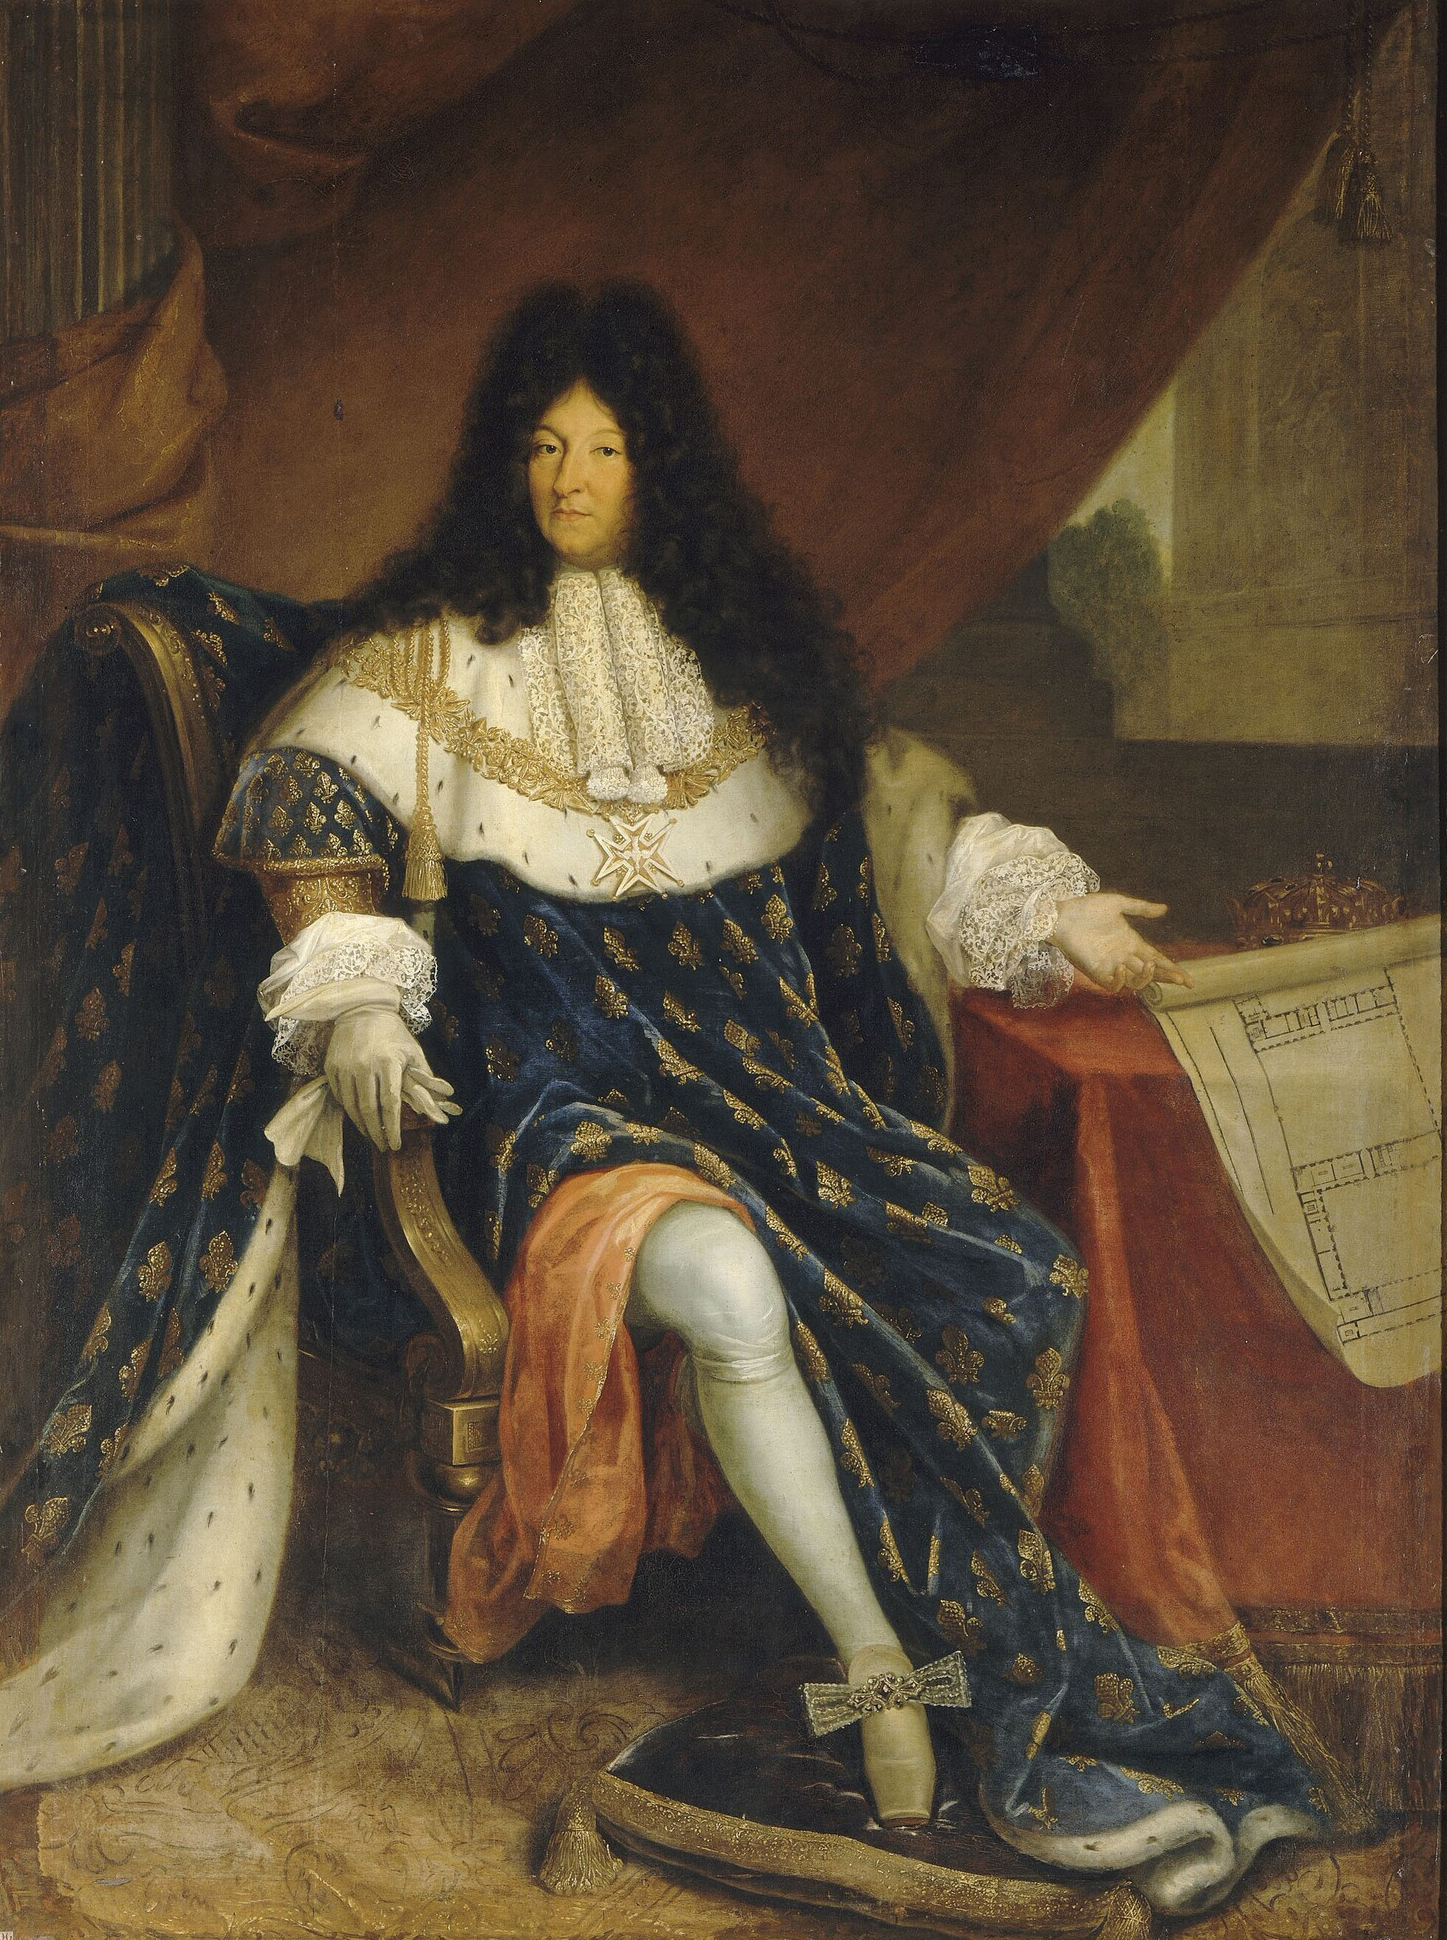 Louis XIV is known in the history of fashion, among other things, for wearing extravagant clothes